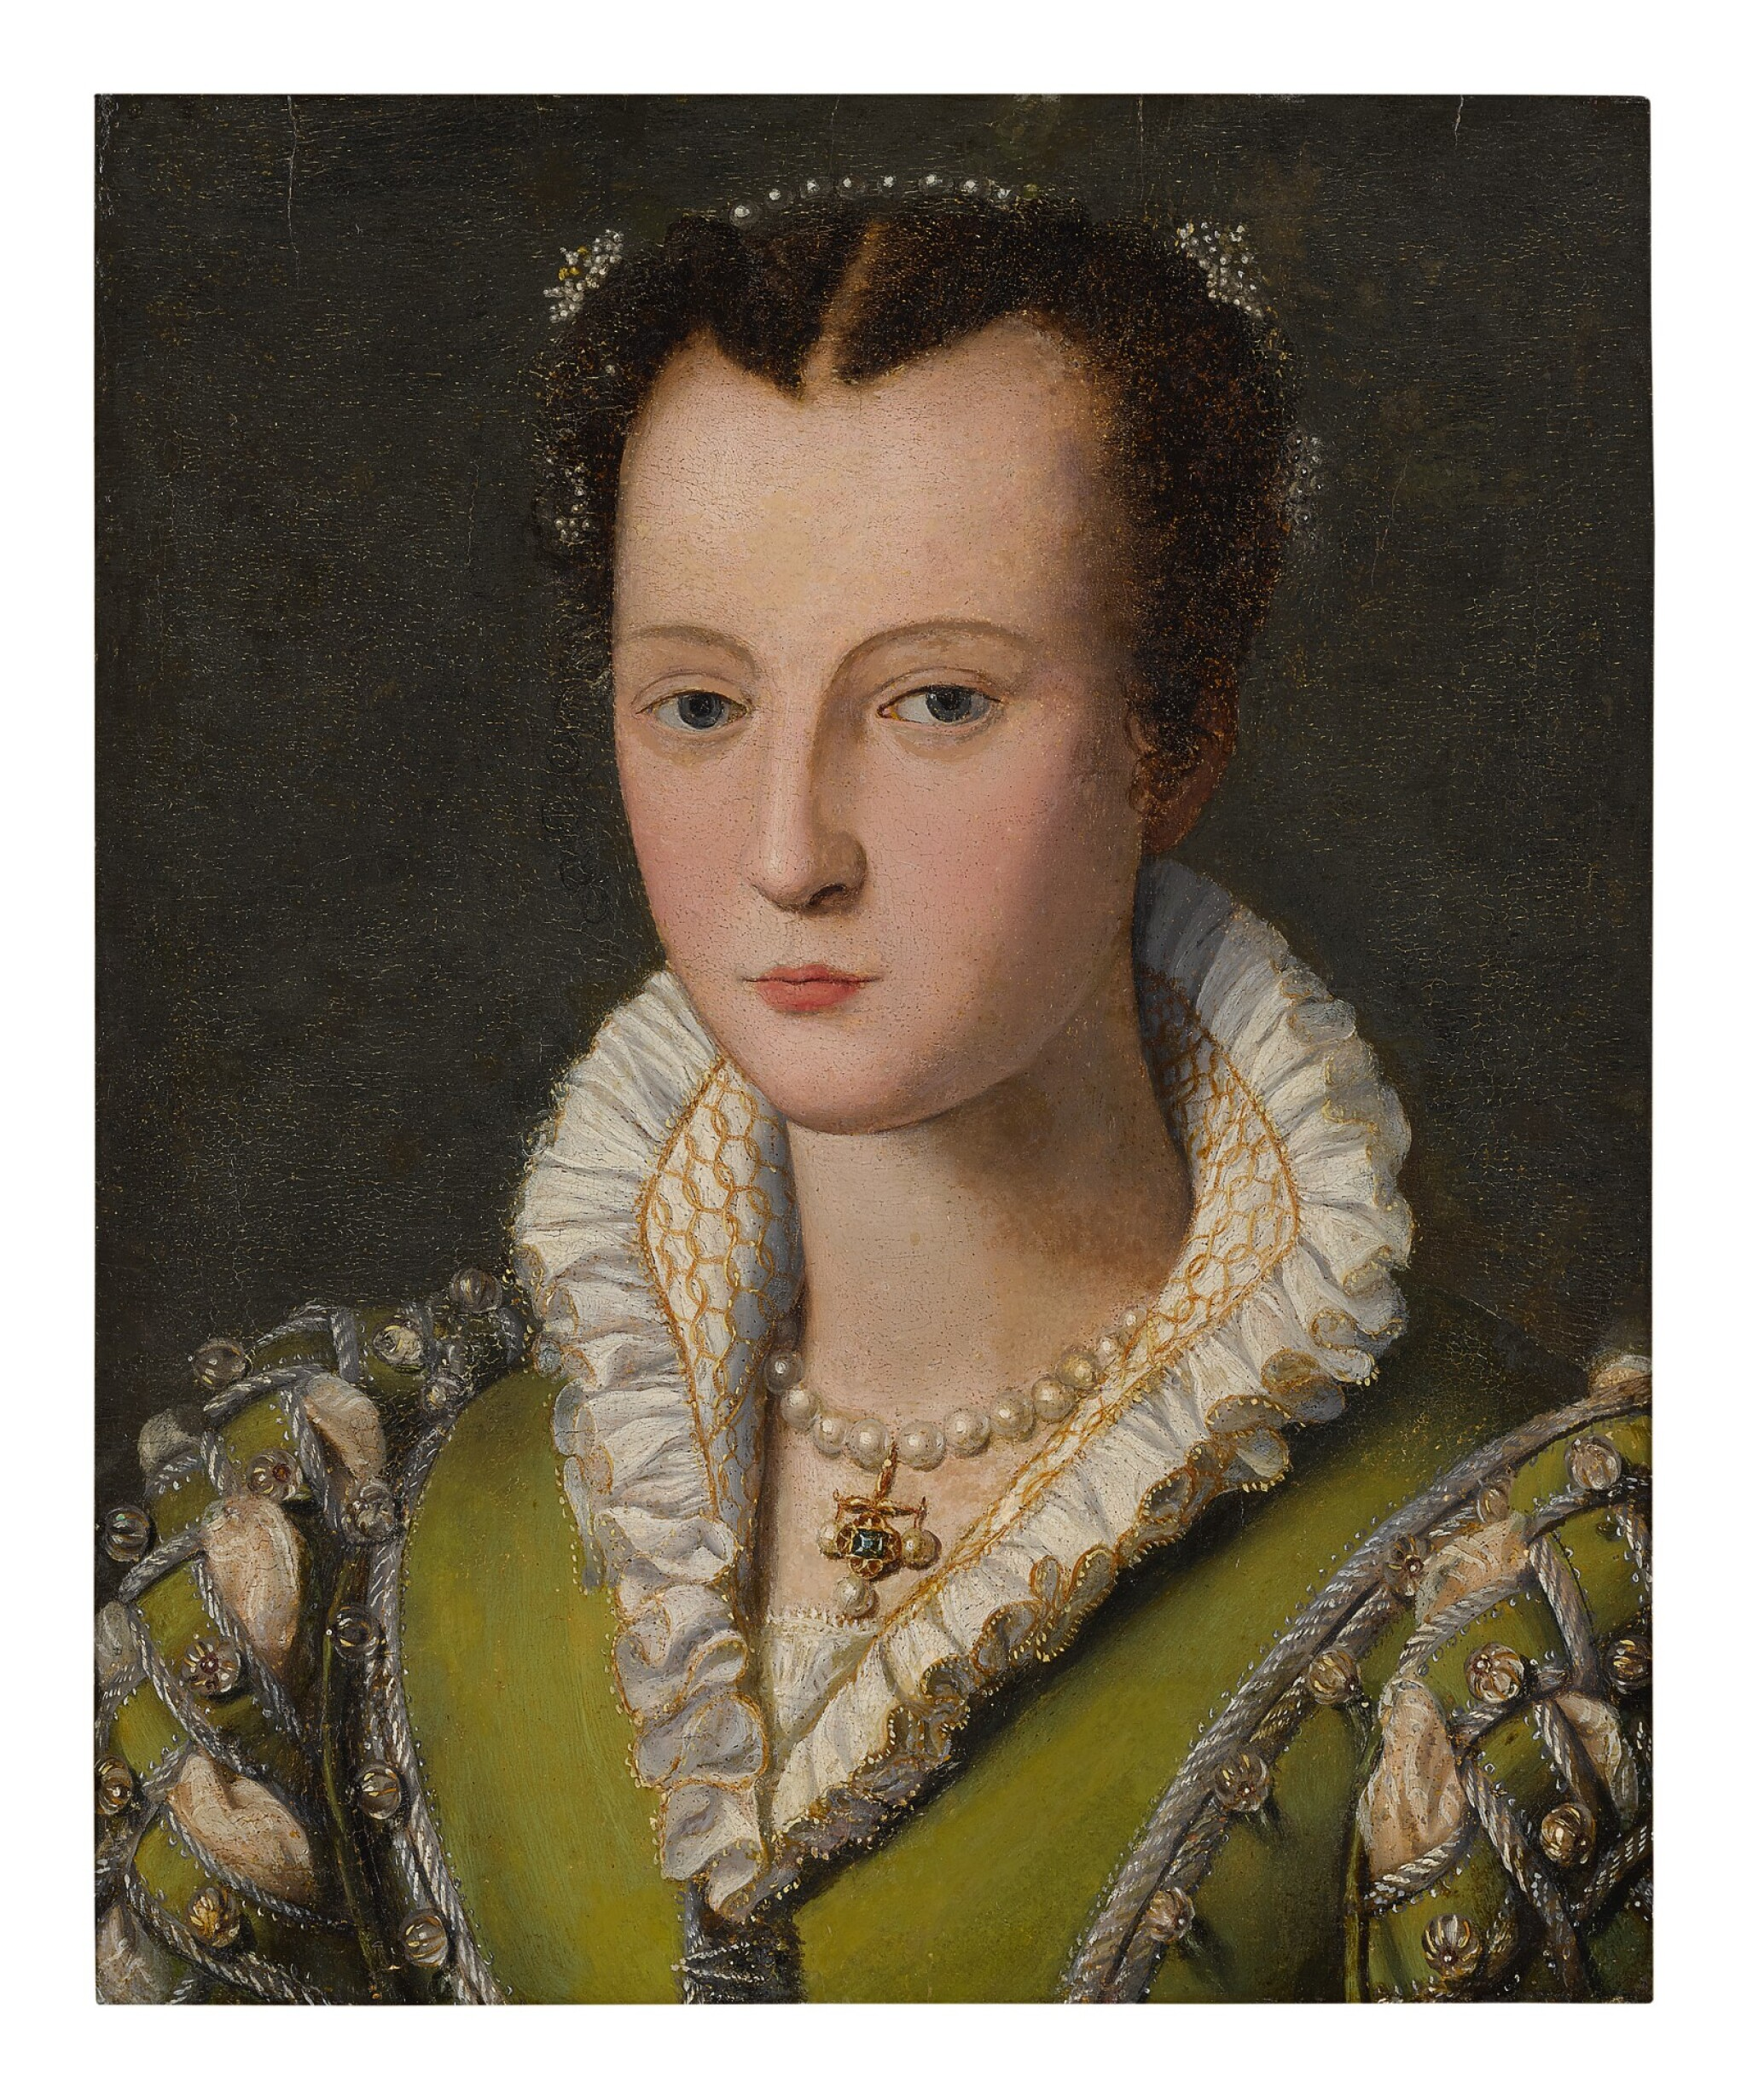 CIRCLE OF ALESSANDRO ALLORI | PORTRAIT OF A LADY, SAID TO BE A MEDICI, BUST LENGTH, WEARING A GREEN DRESS AND PEARLED NECKLACE